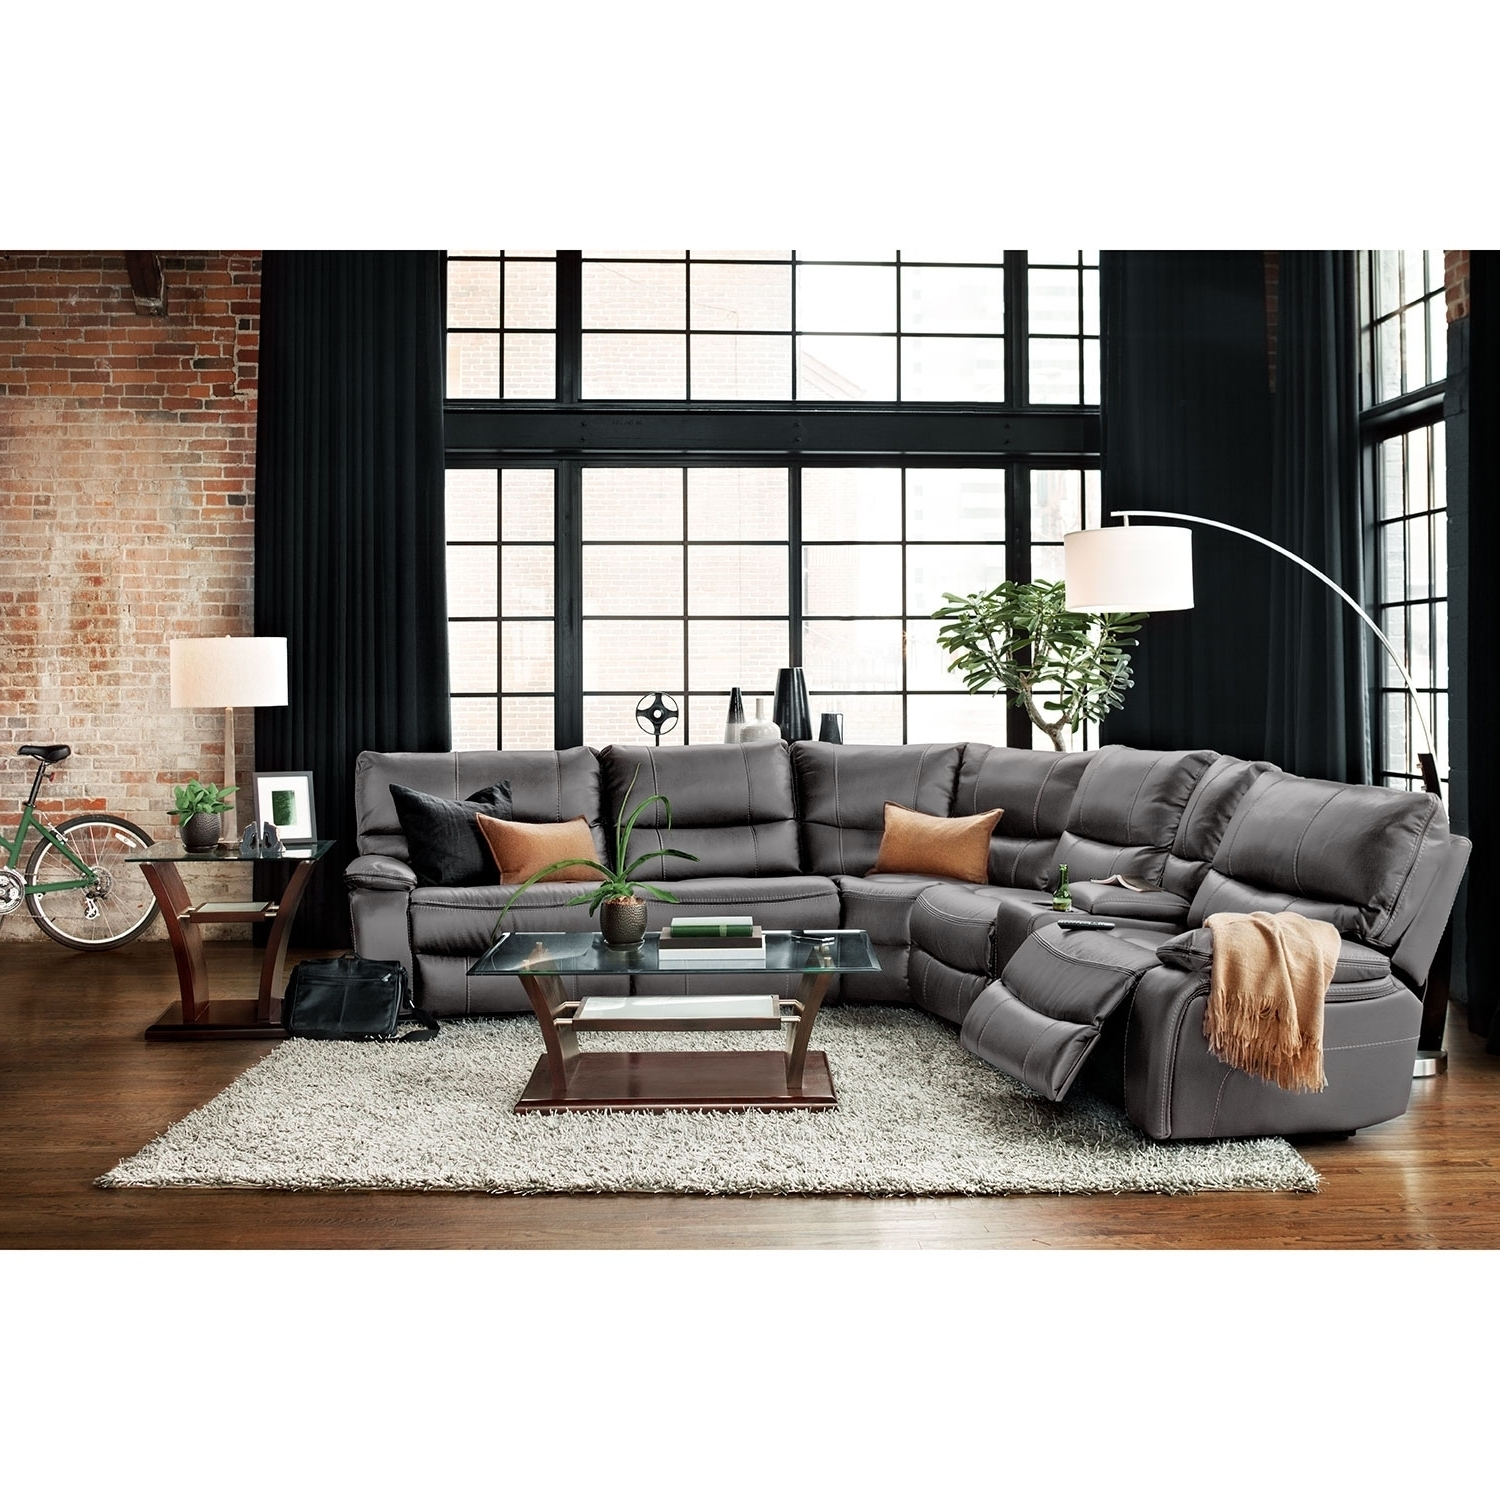 Orlando Sectional Sofas In Preferred Orlando 6 Piece Power Reclining Sectional With 1 Stationary Chair (View 9 of 20)